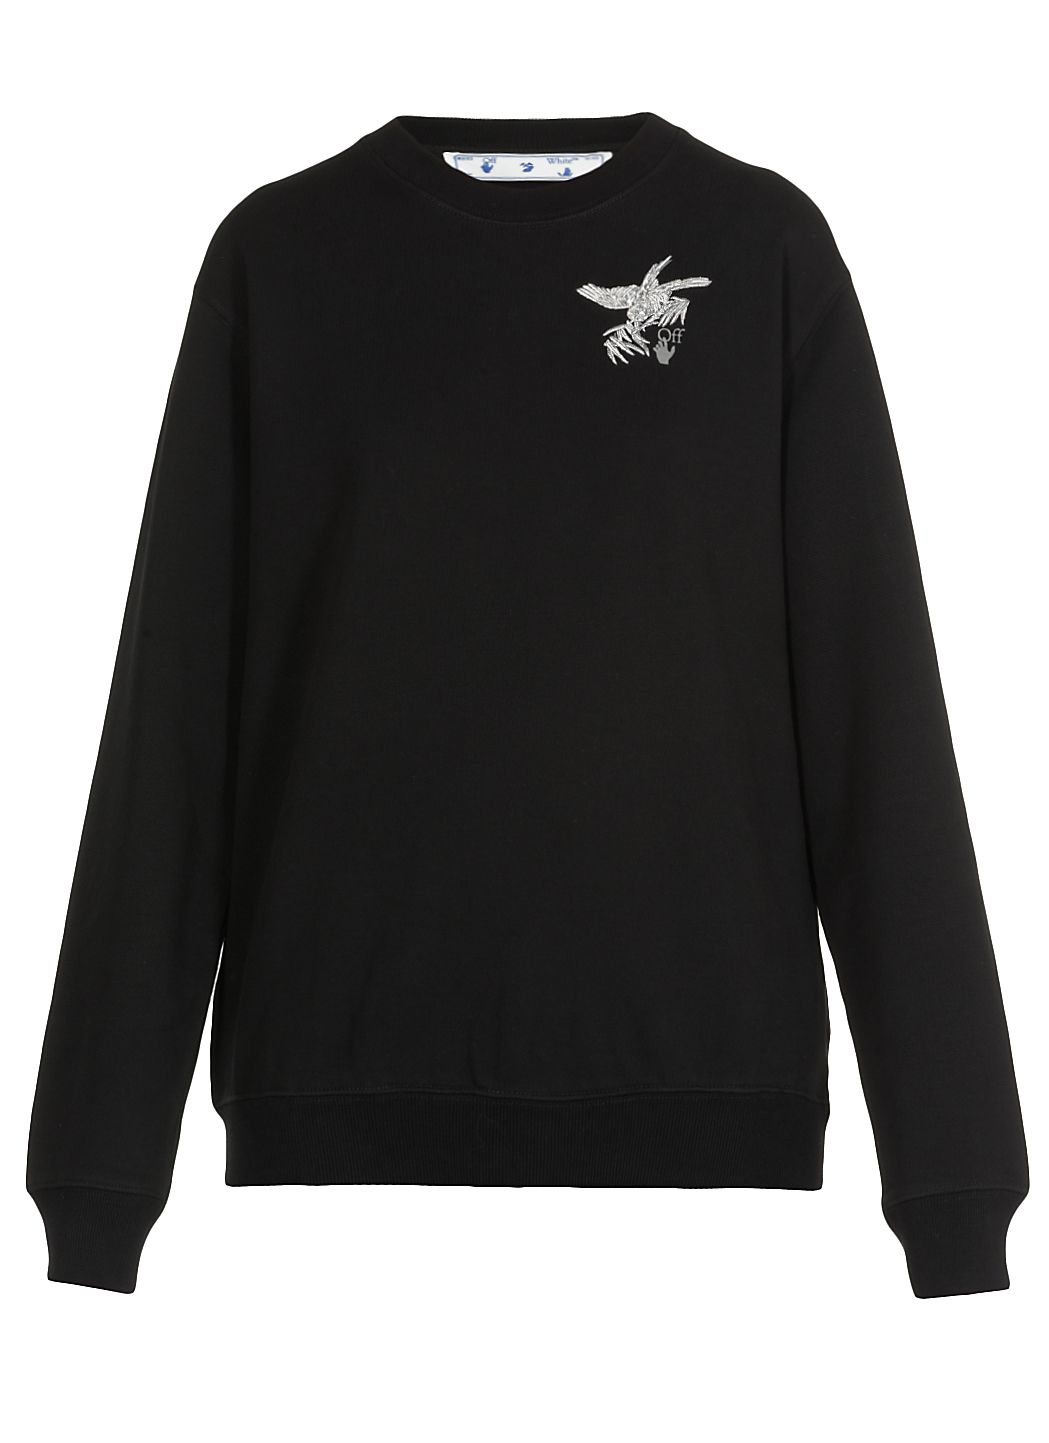 Emrboidered Birds Reflective Sweatshirt